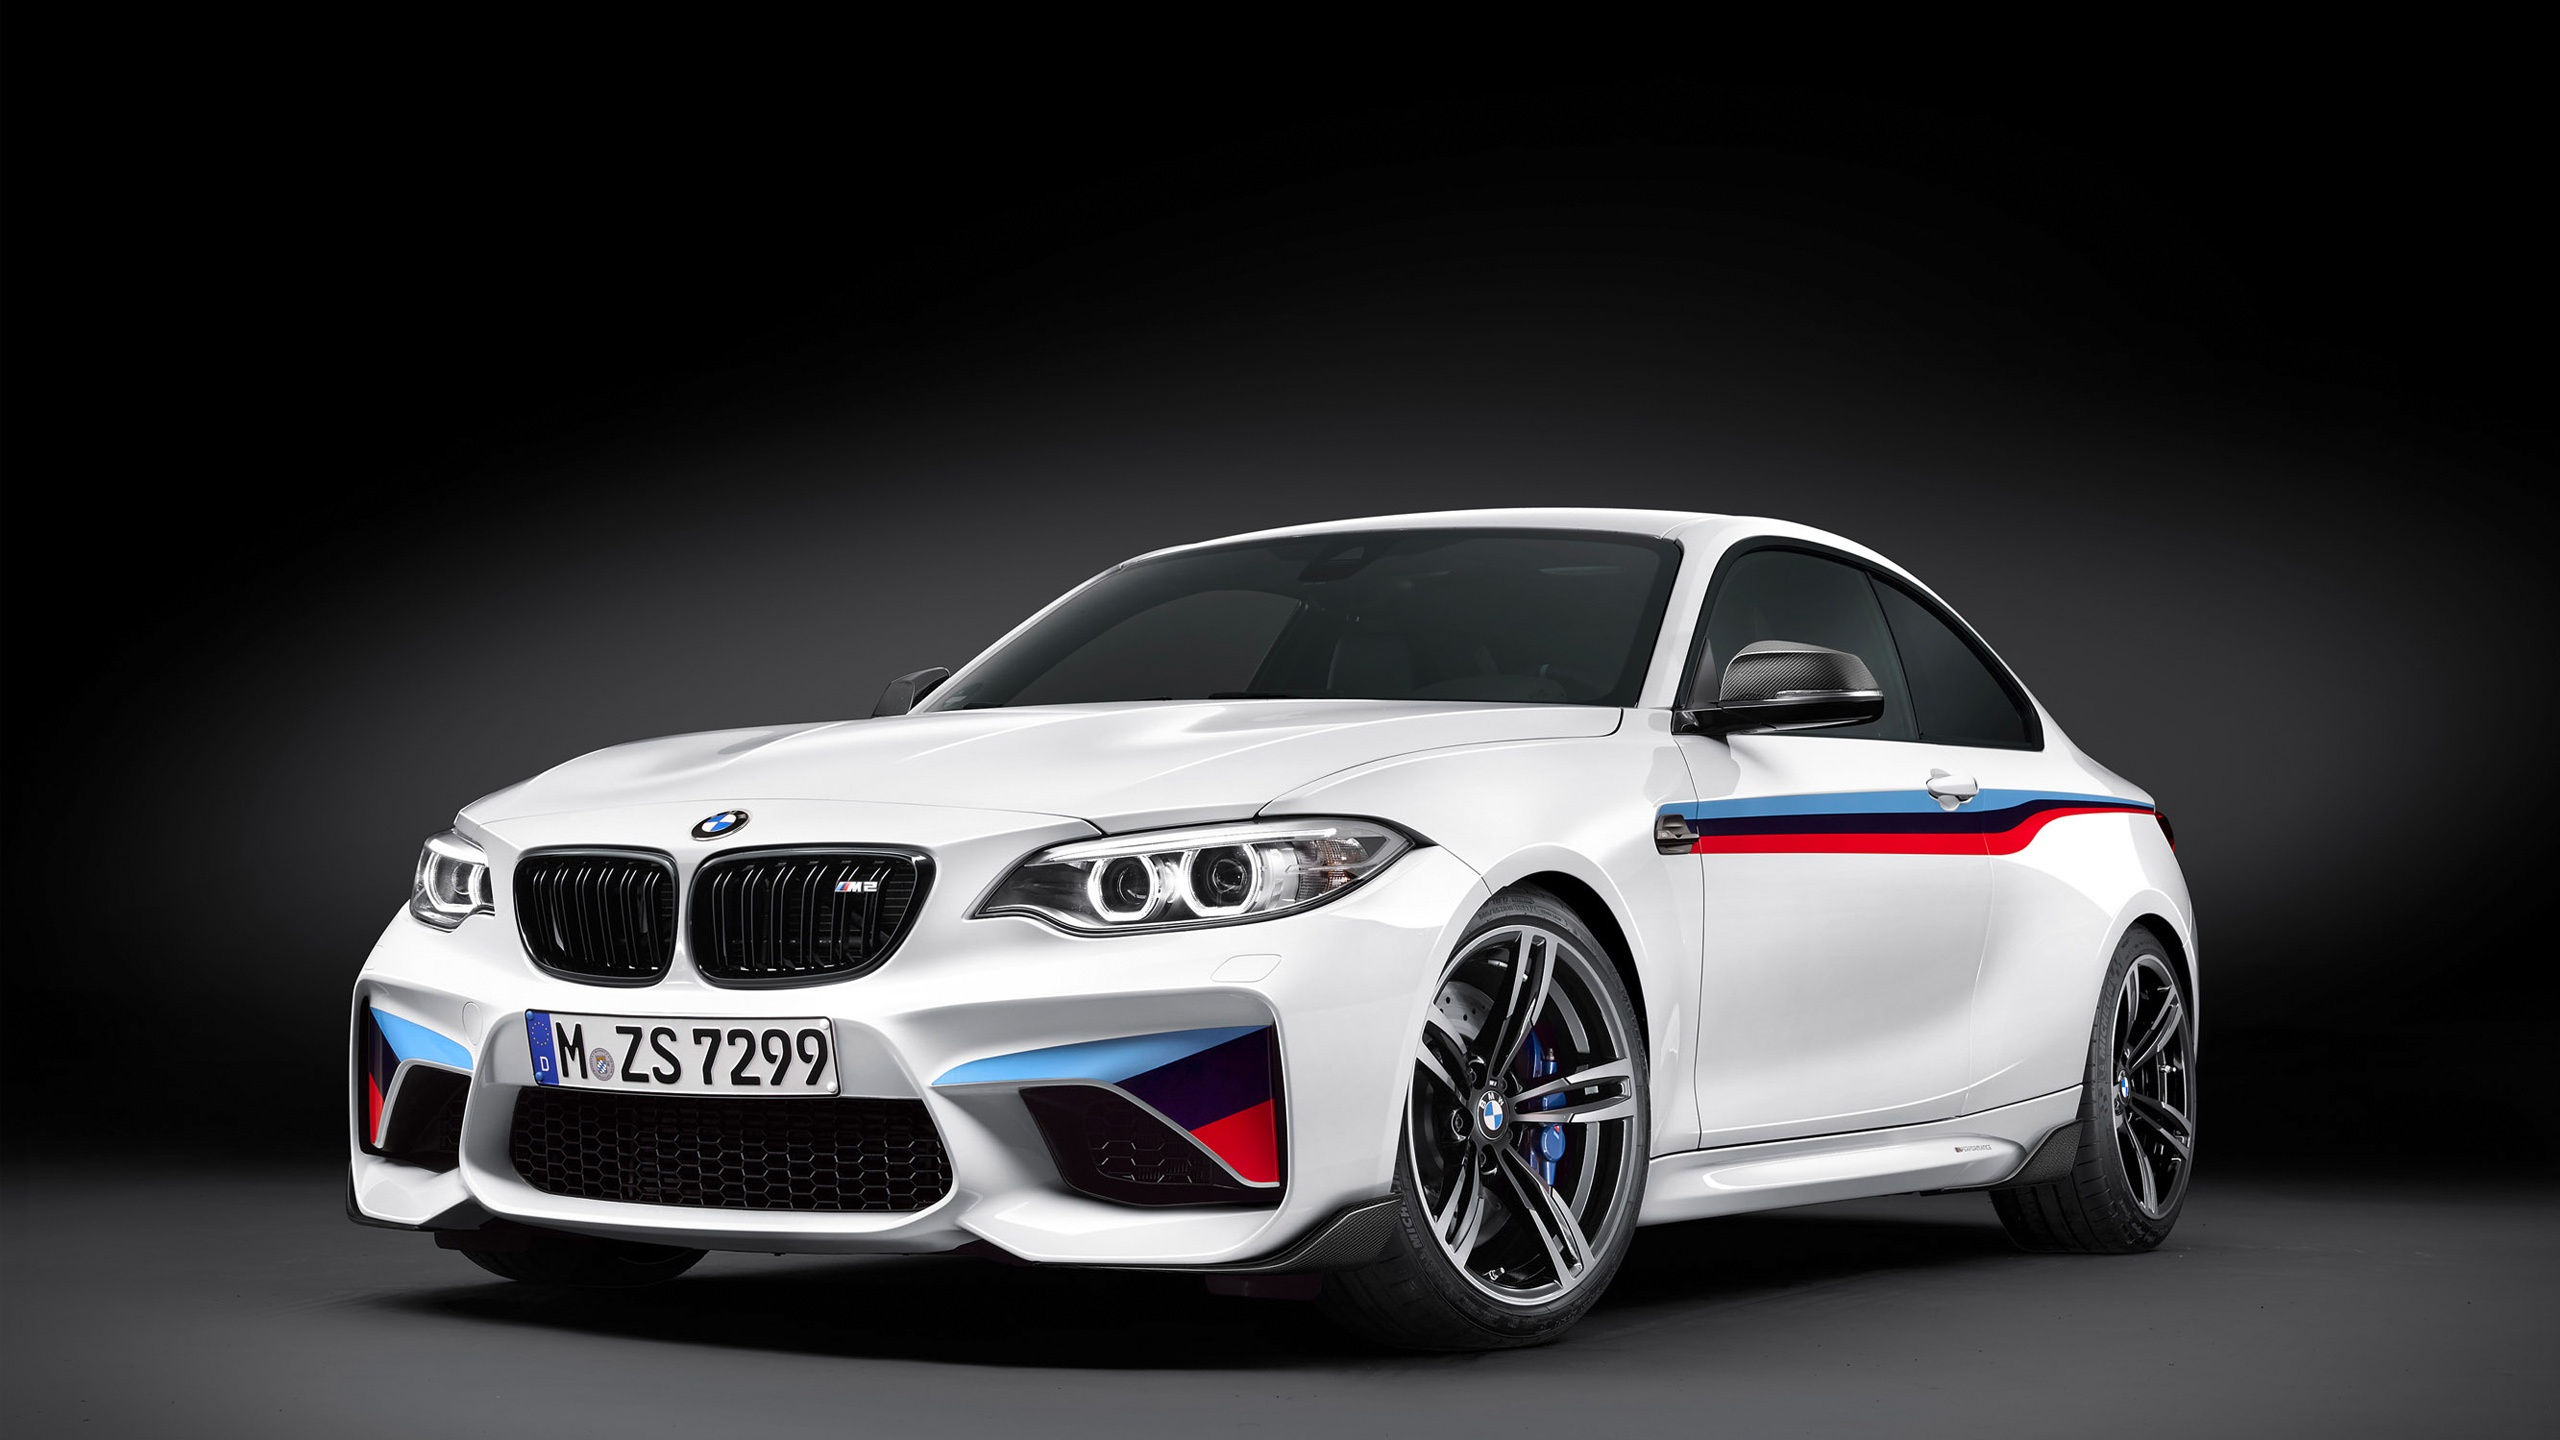 2016 Bmw M2 Coupe M Performance Parts Wallpapers In Jpg Format For